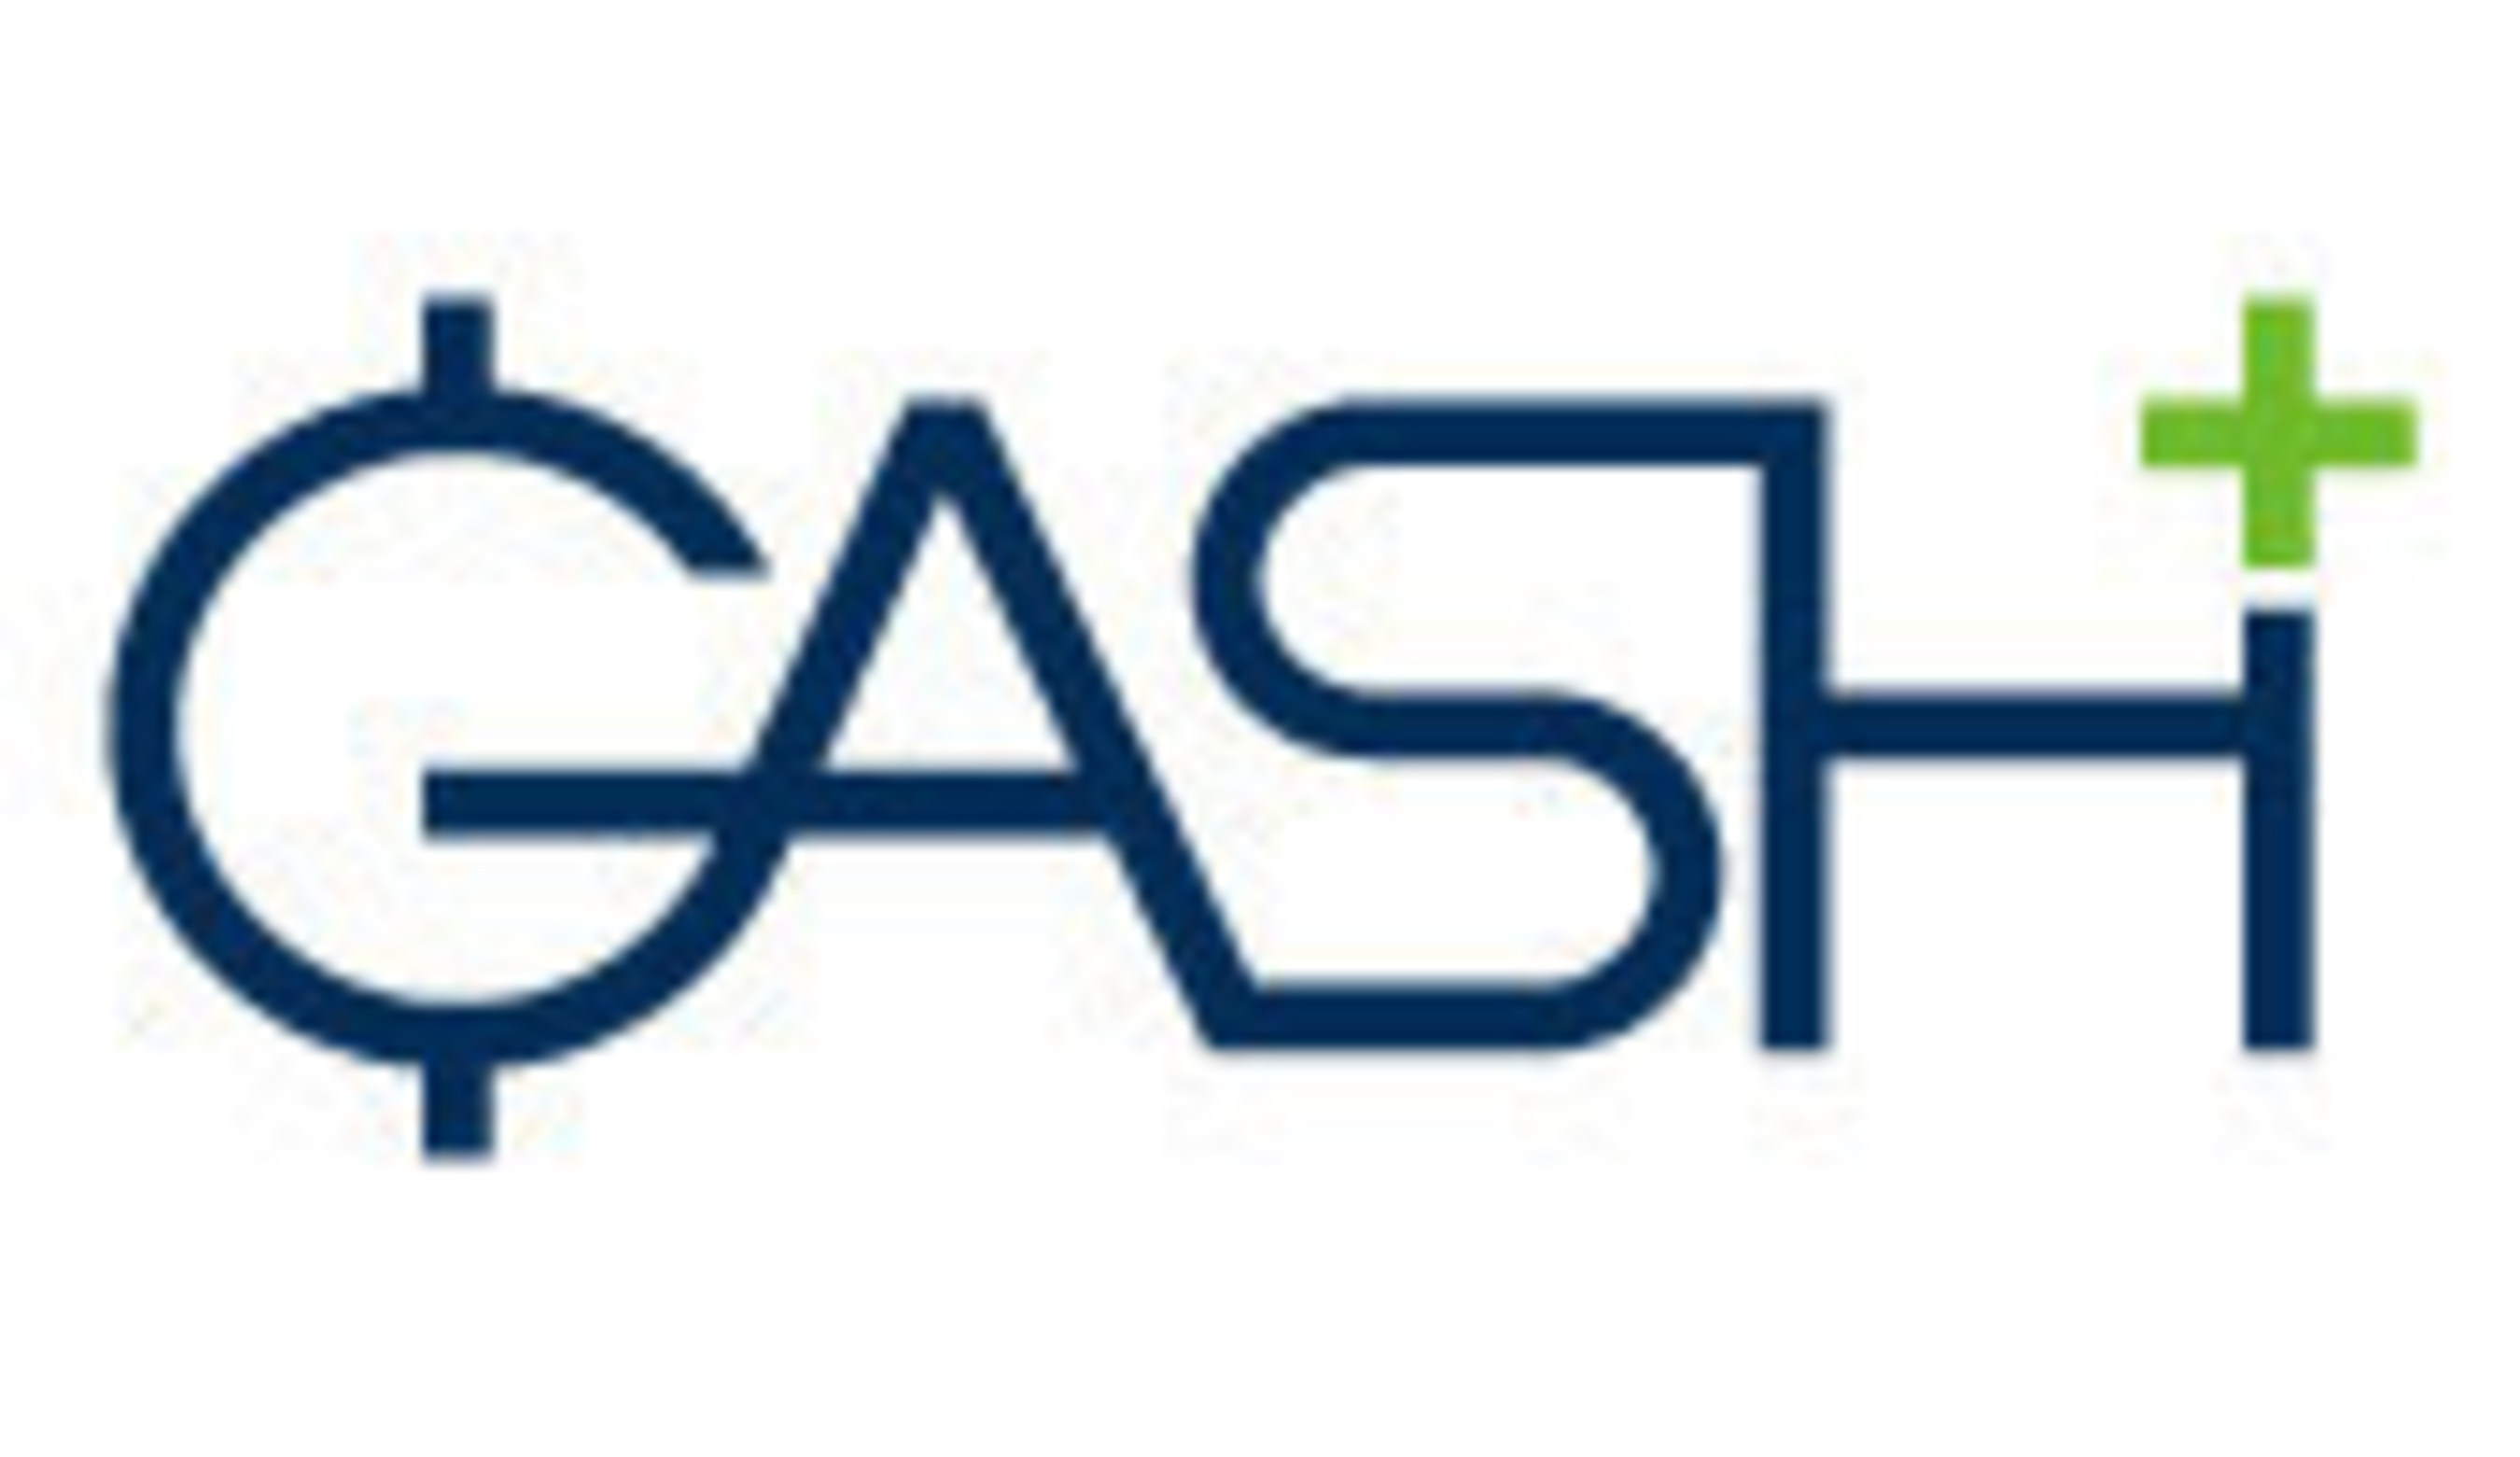 UOL BoaCompra and GASH PLUS Partner to Provide Cross-Payment Coverage for Online Games in Emerging Markets